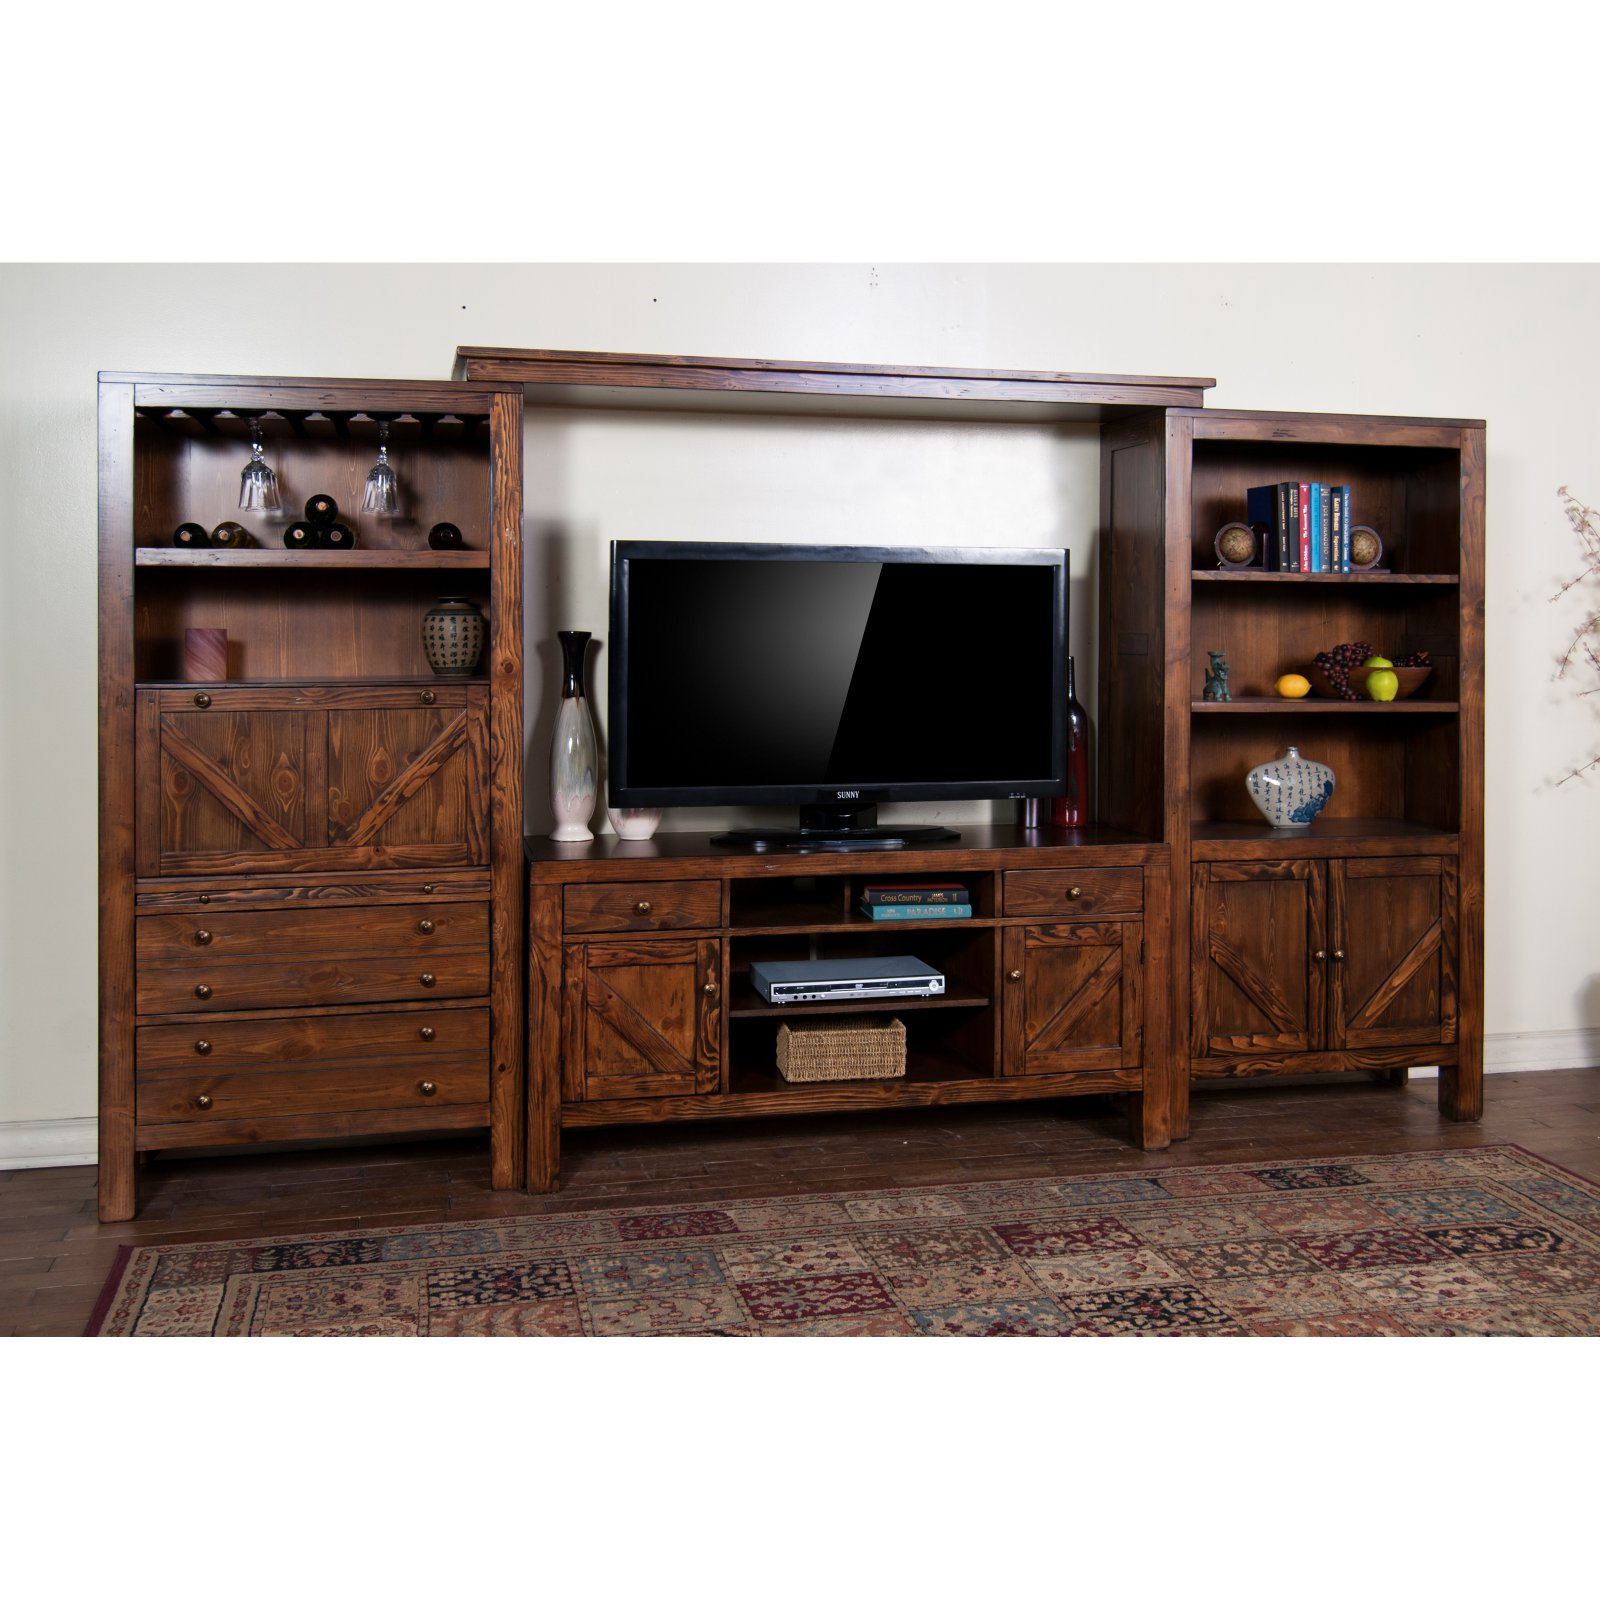 Sunny Designs Ranch House 62 in. Entertainment Center